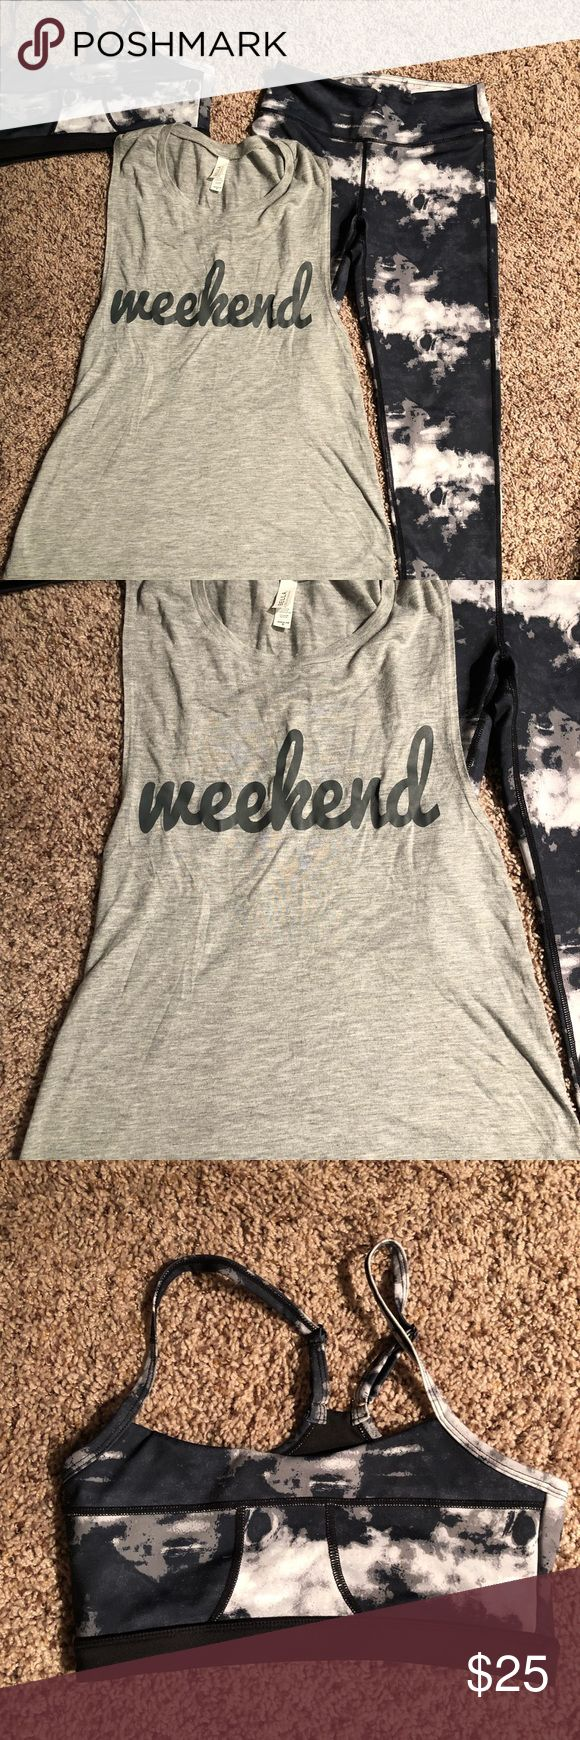 """""""Weekend"""" Women's Workout Set Includes white and navy """"cloud"""" looking pattern sports bra and pants with matching gray tank top that says """"weekend"""" on front. Size is actually small but fits like an x-small. Like new. Other"""